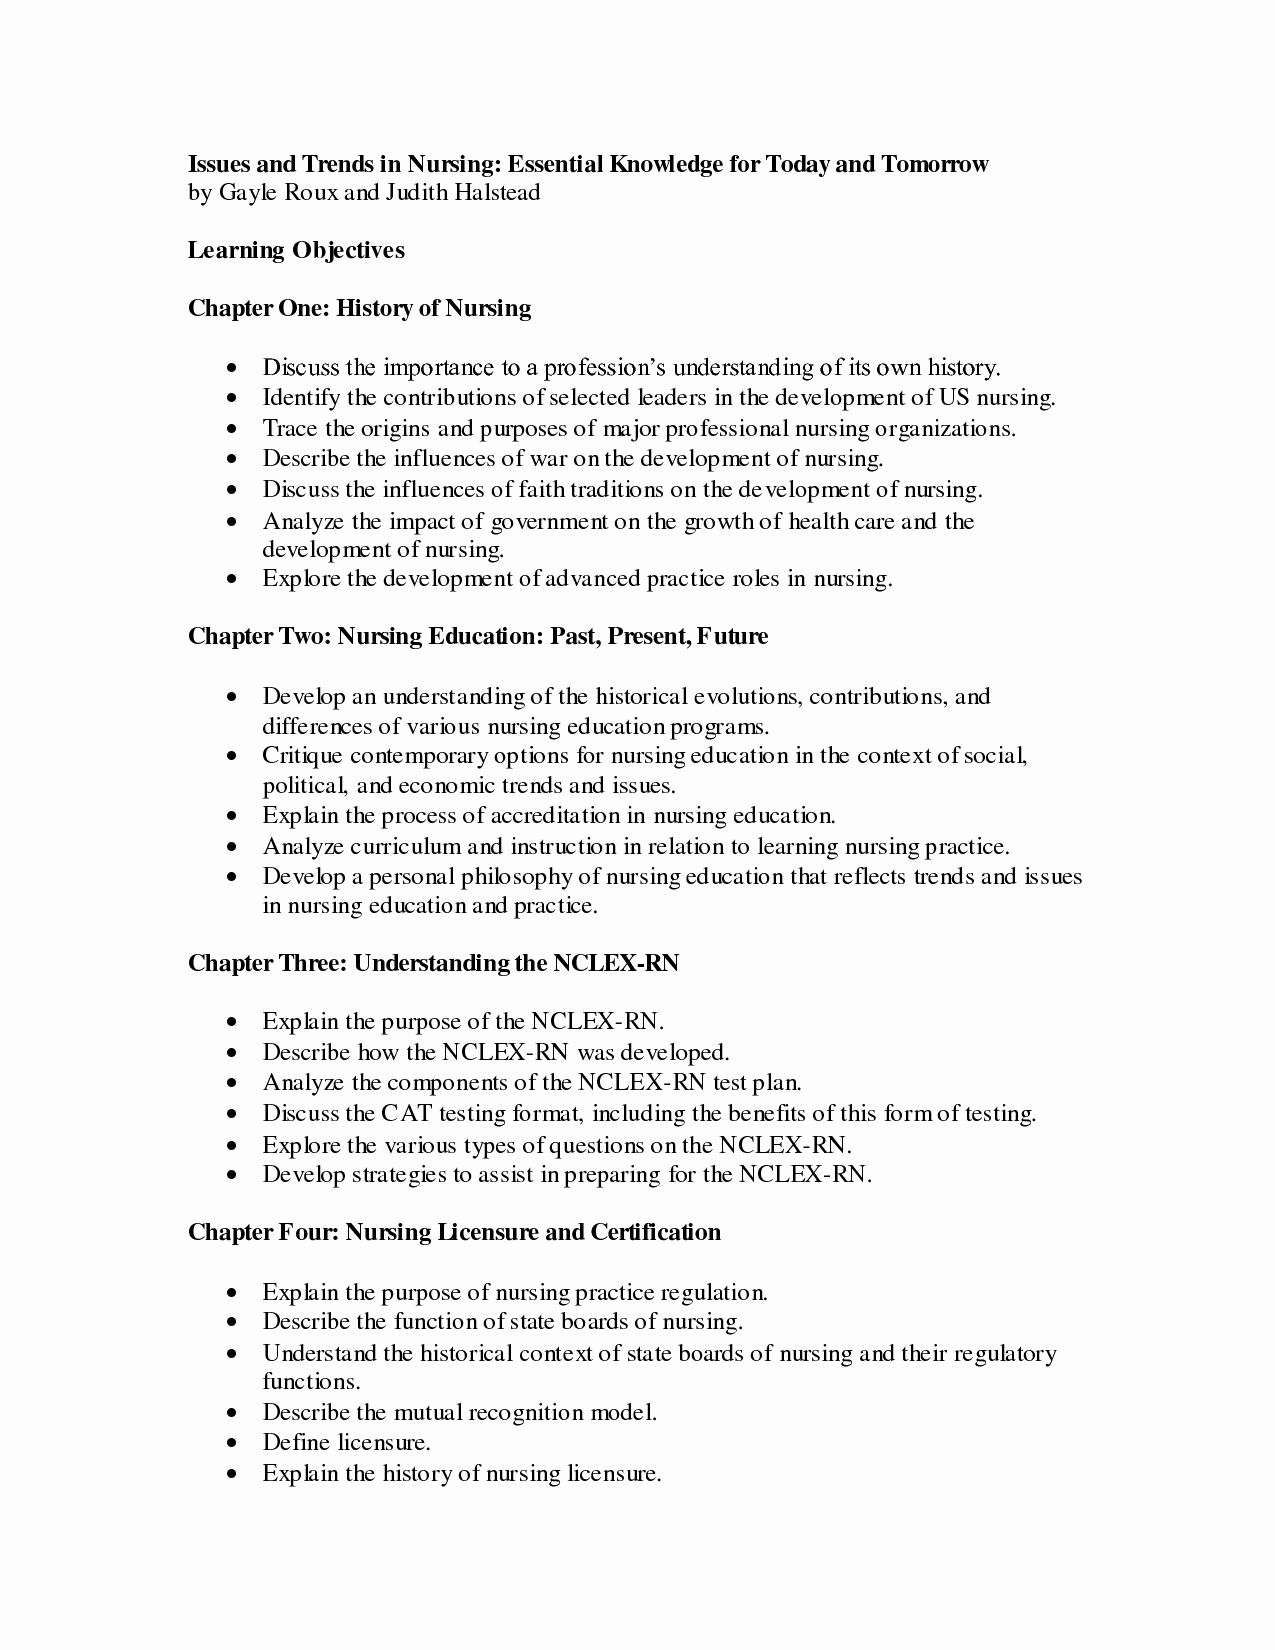 Example Of A Report Paper Luxury Examples Of Nursing Research Critique Paper Education Research Paper Nursing Research History Of Nursing